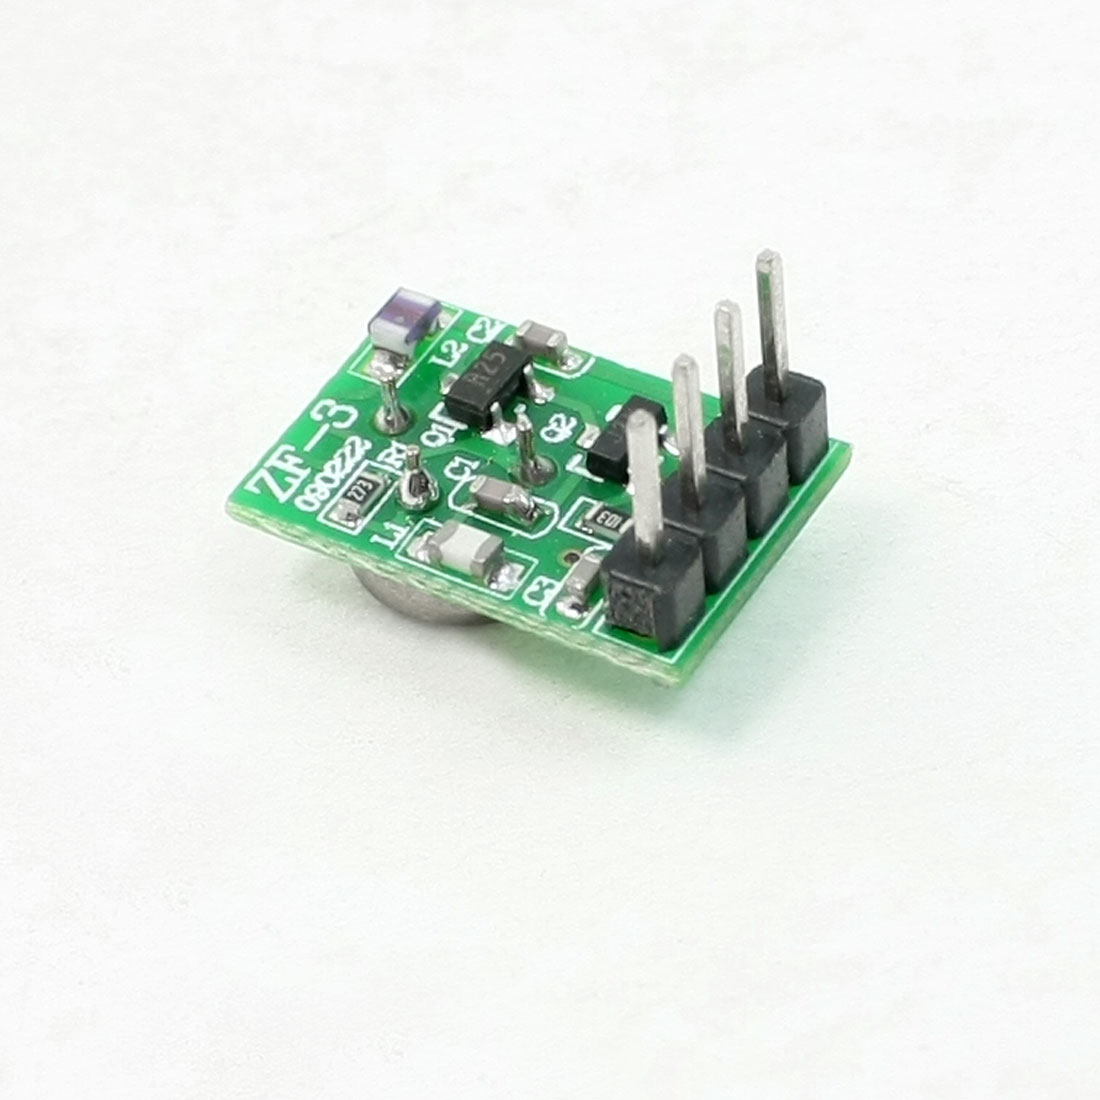 ASK Modulation Mode 433MHZ Frequency ZF-3 Sender Module 8-10mA DC9V-12V